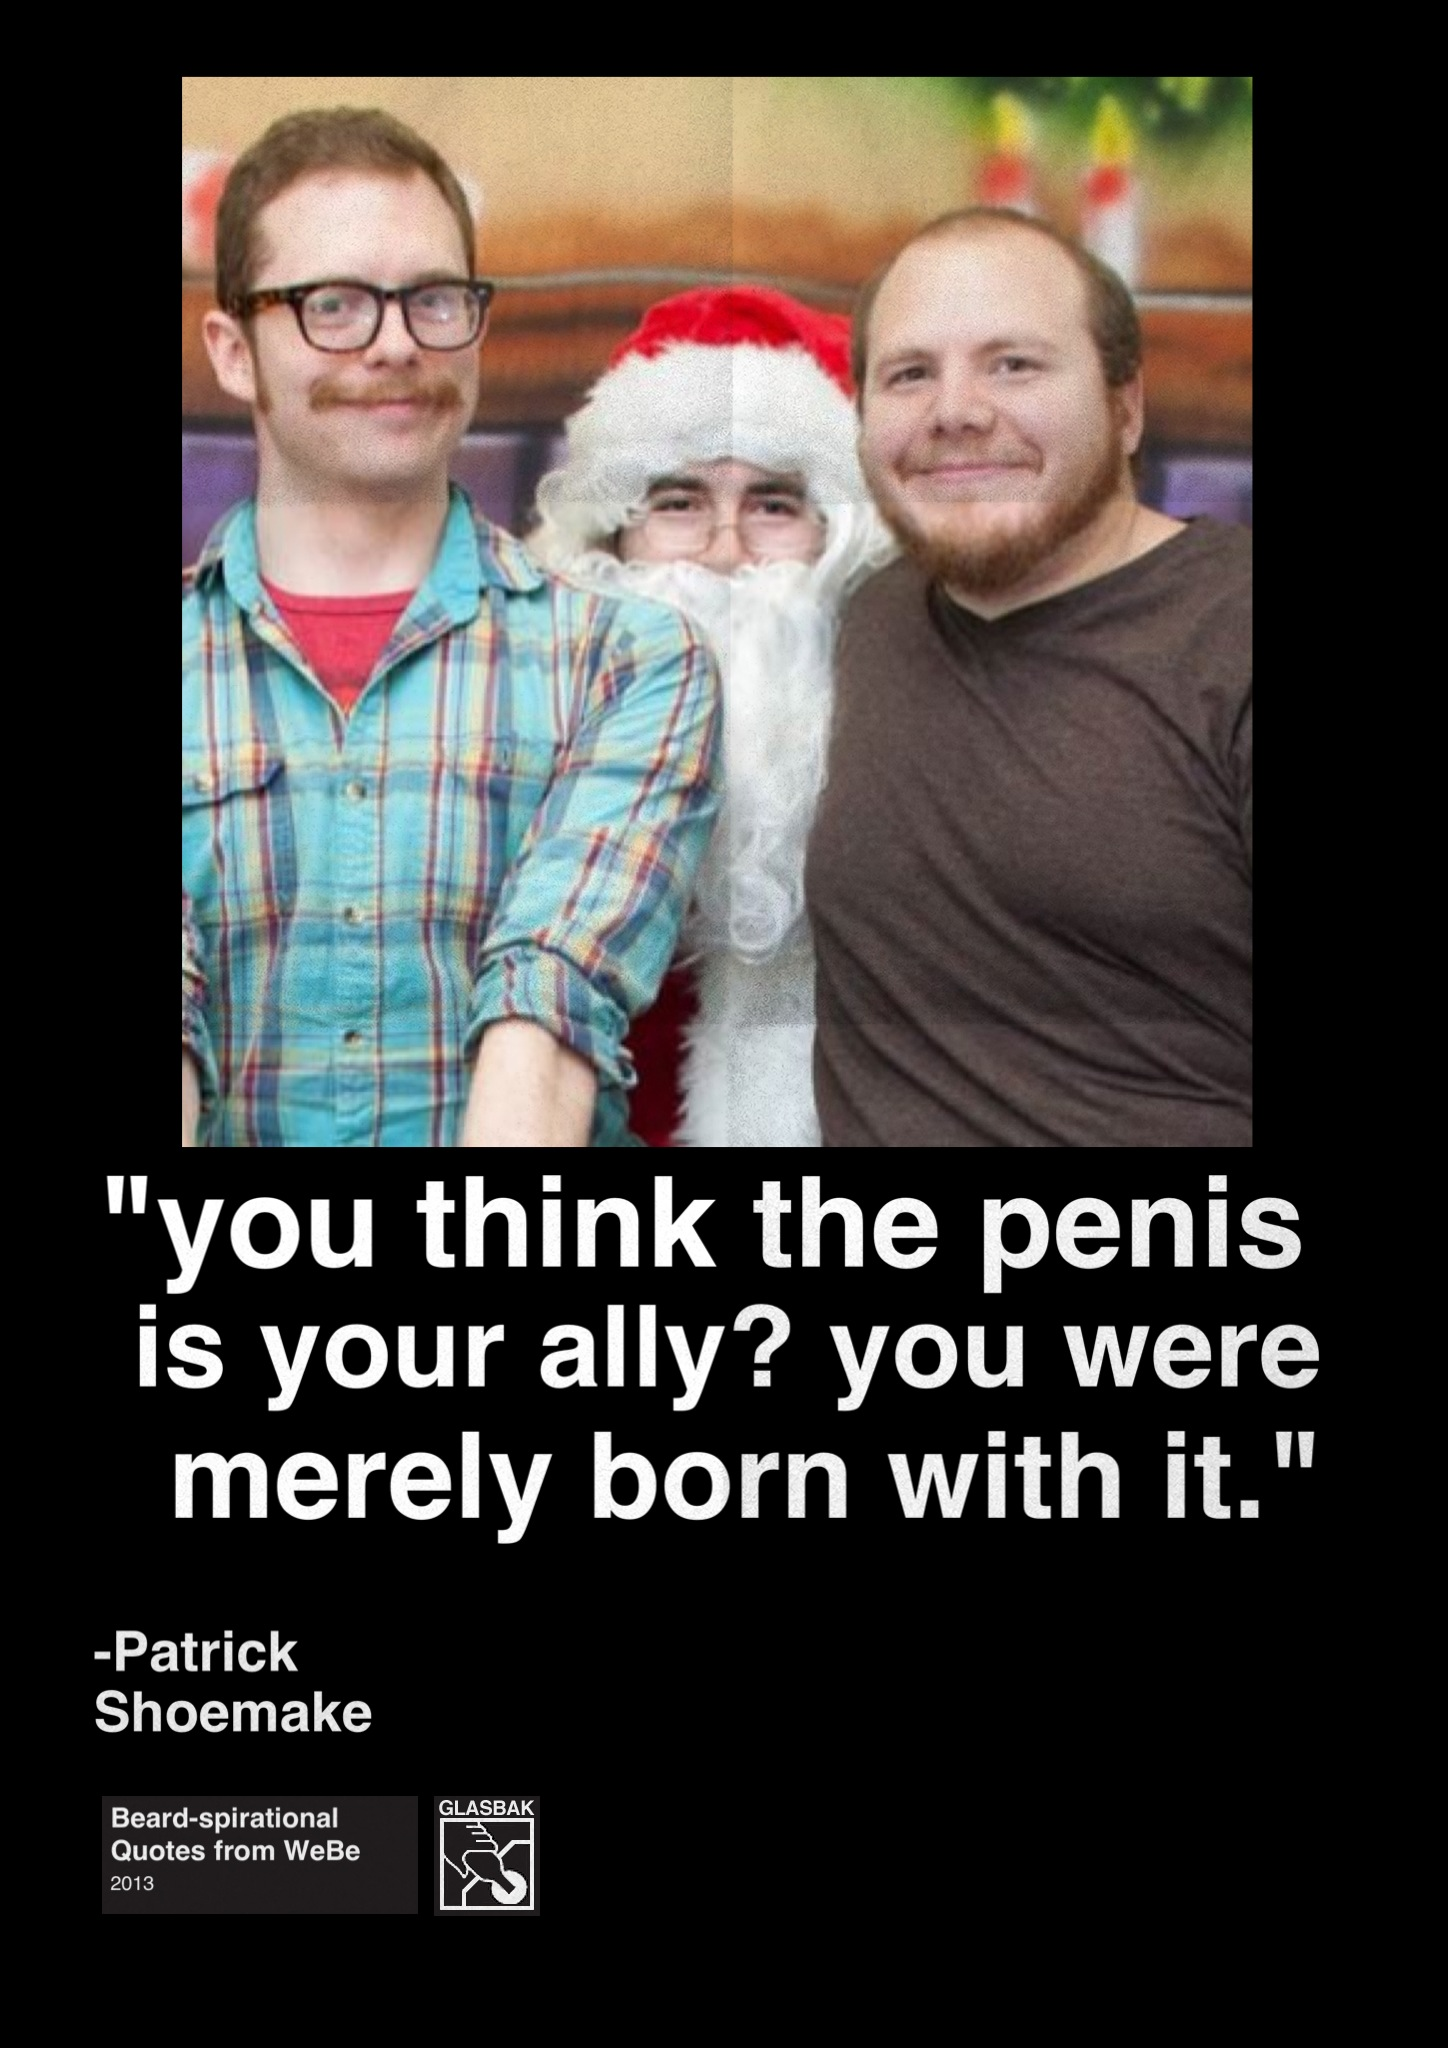 2013-07-22_you think the penis is your ally you were merely born with it.jpg